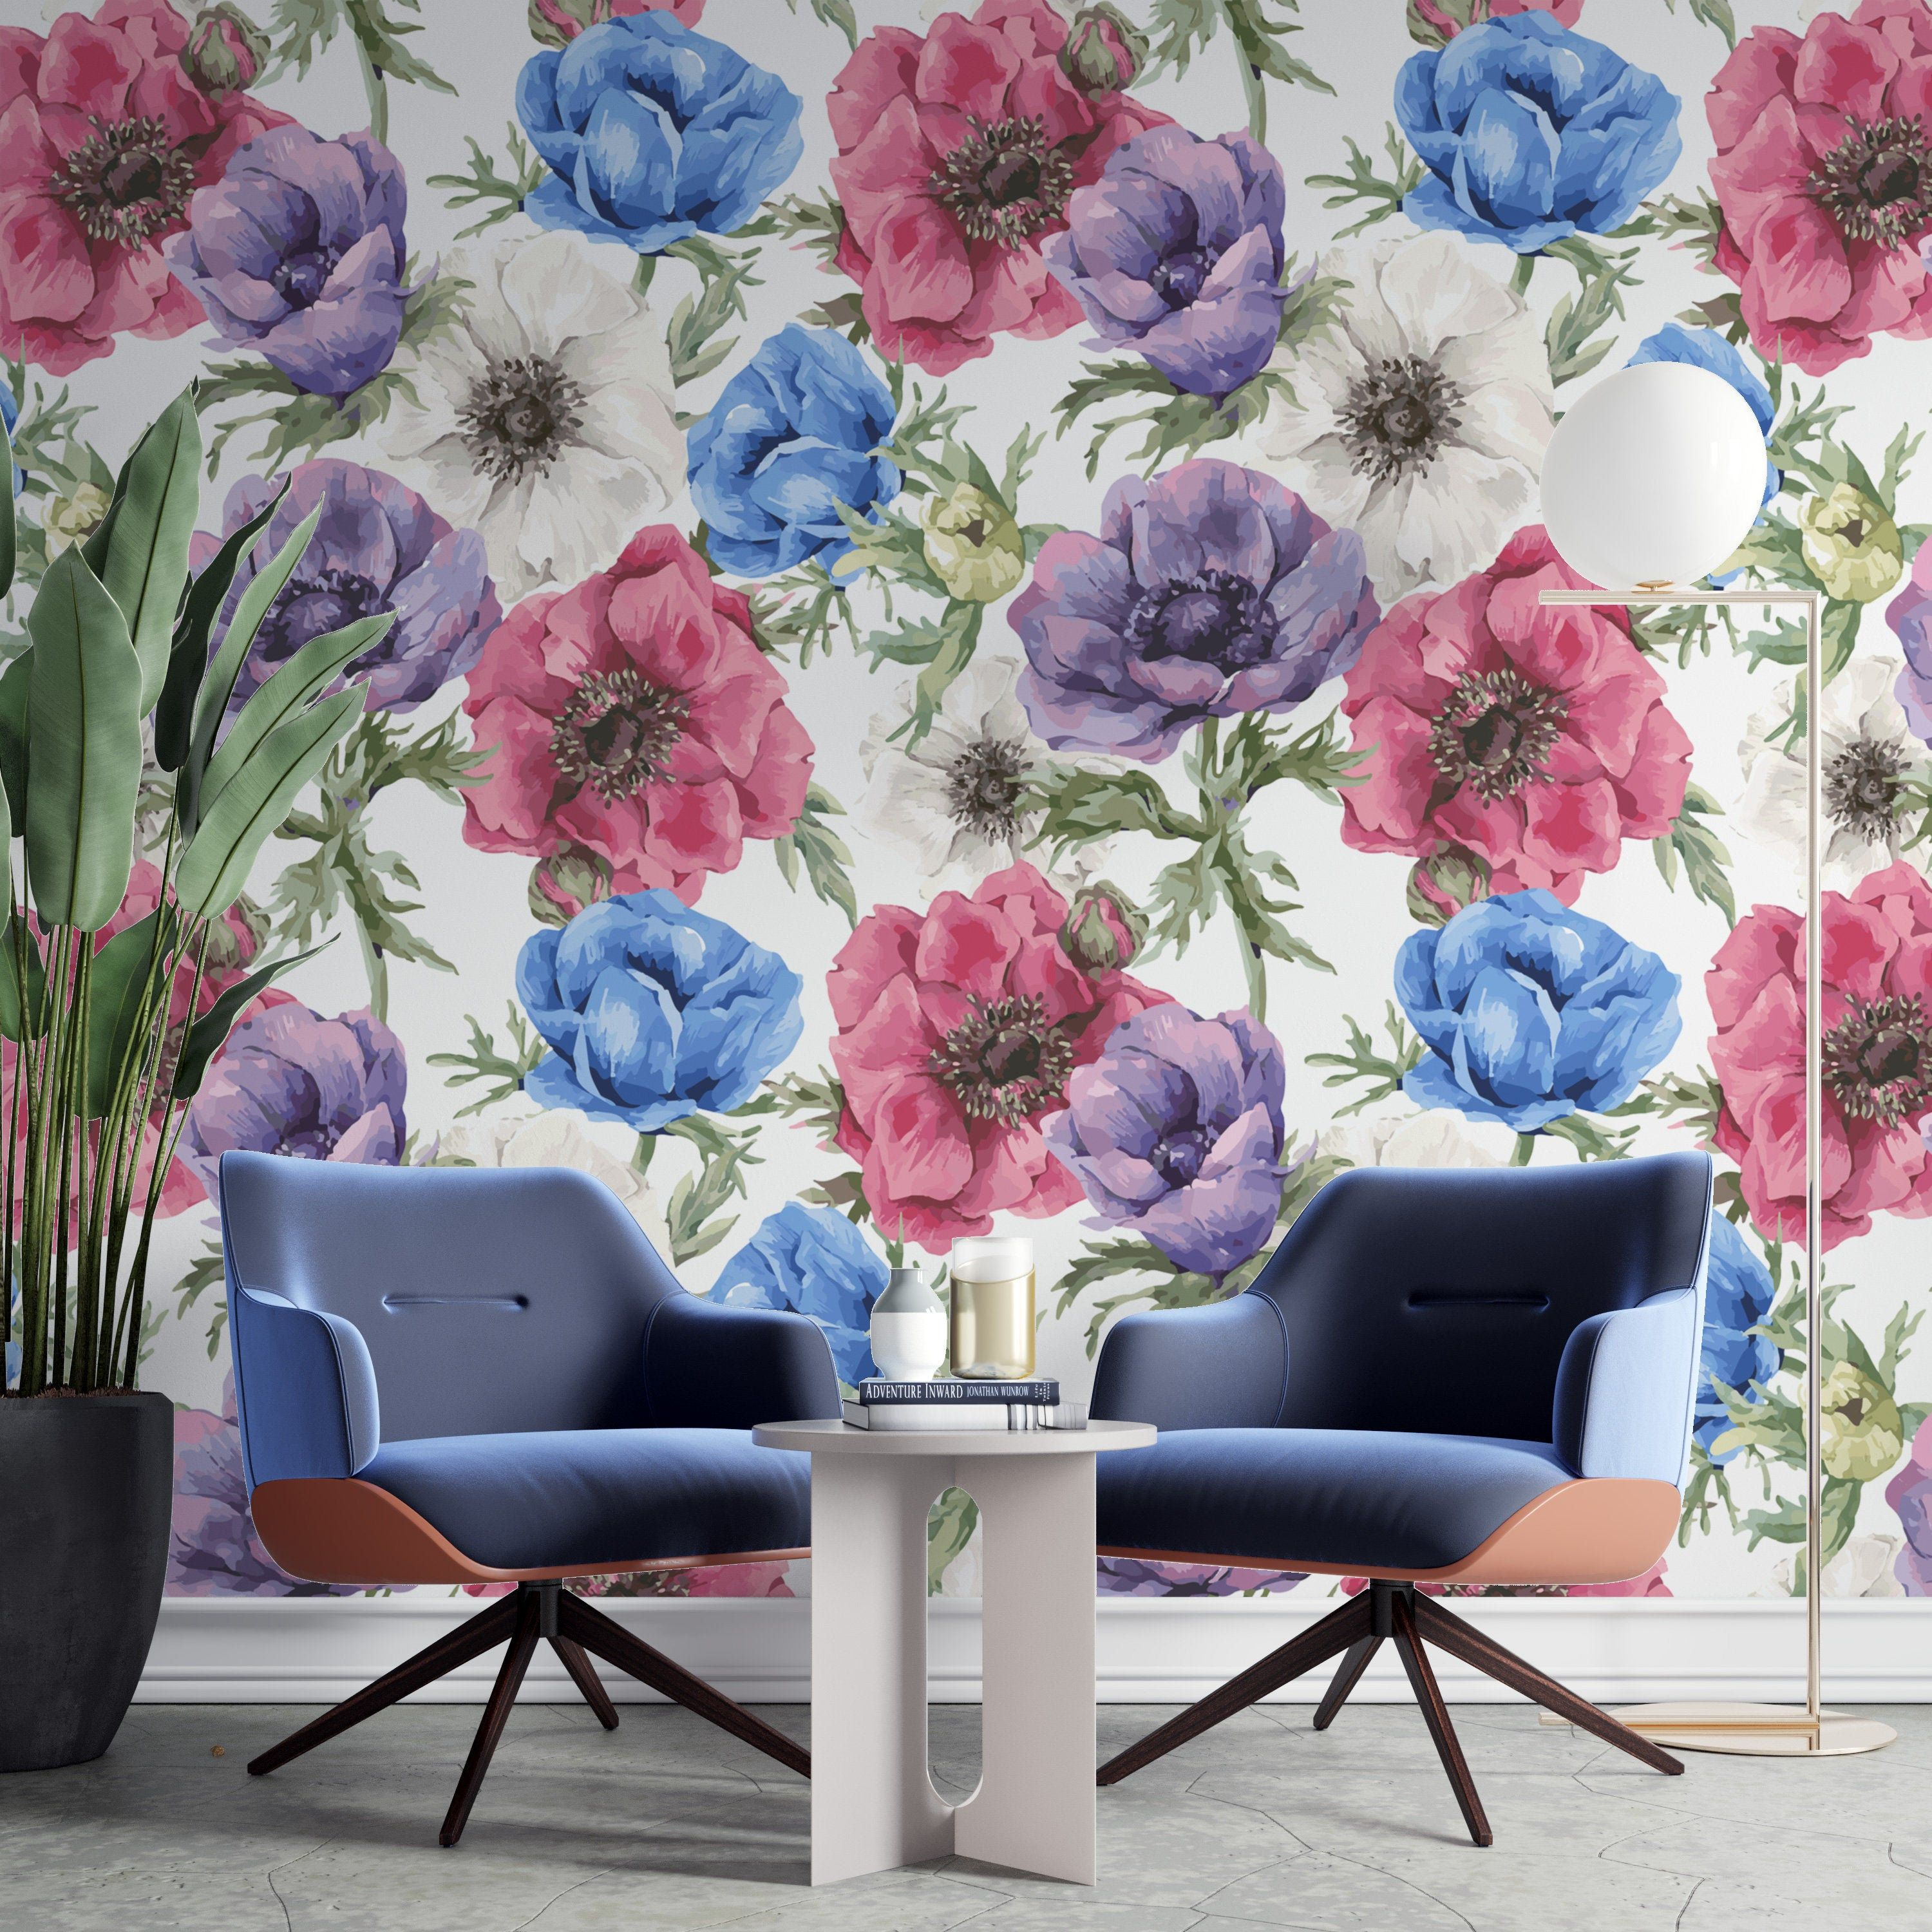 Removable Wallpaper Watercolor Blue Floral, Peel and Stick